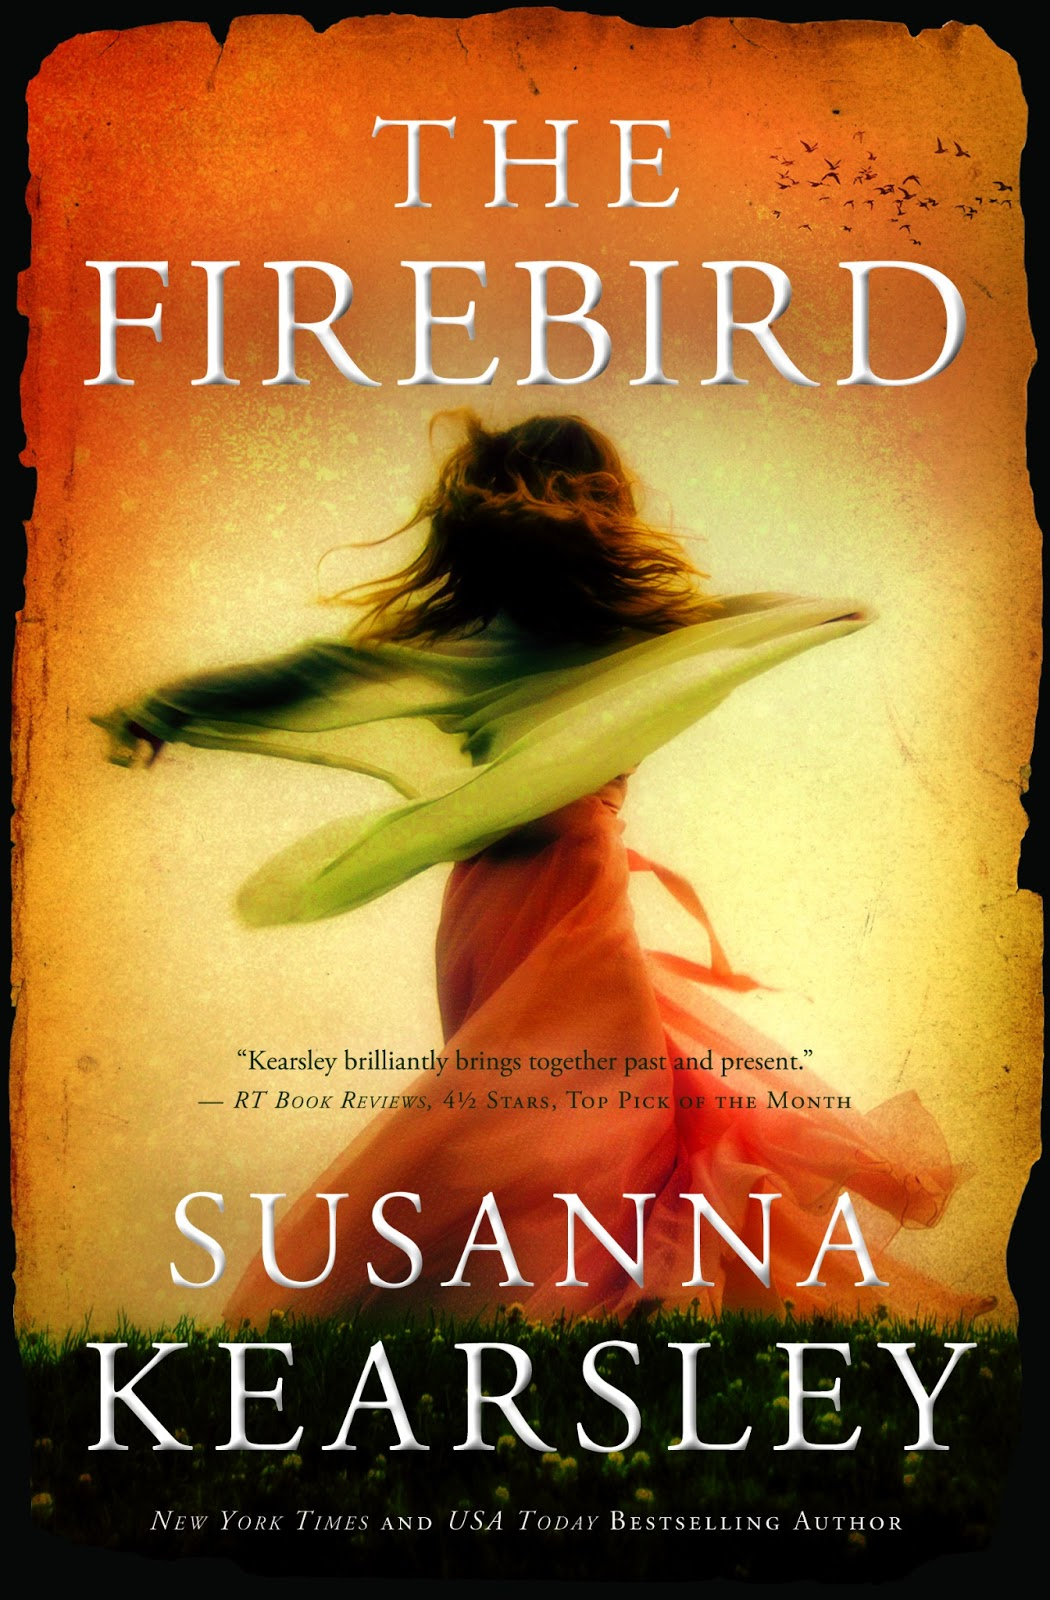 The Firebird by Susanna Kearsley (Food Reference List)